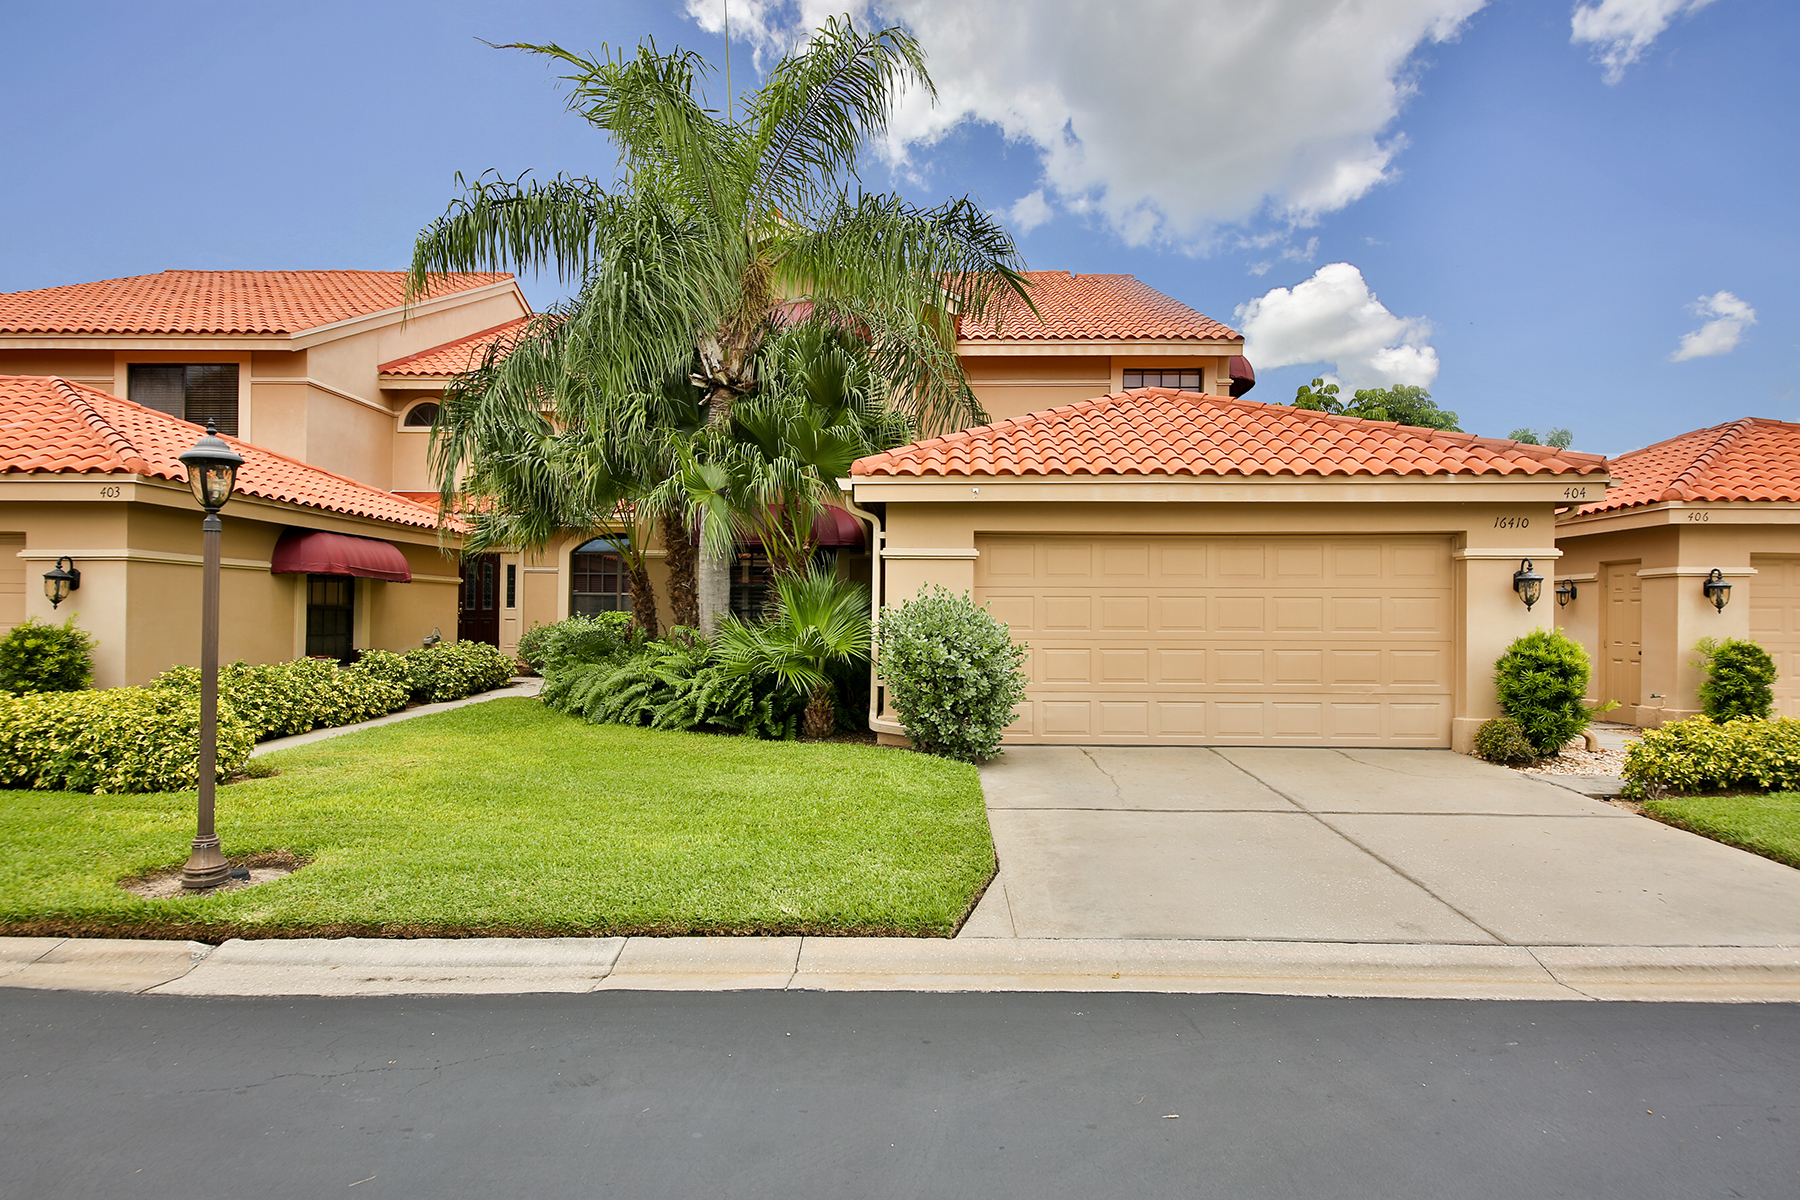 Condominium for Sale at FAIRWAY WOODS AT THE FOREST 16410 Fairway Woods Dr 404 Fort Myers, Florida, 33908 United States